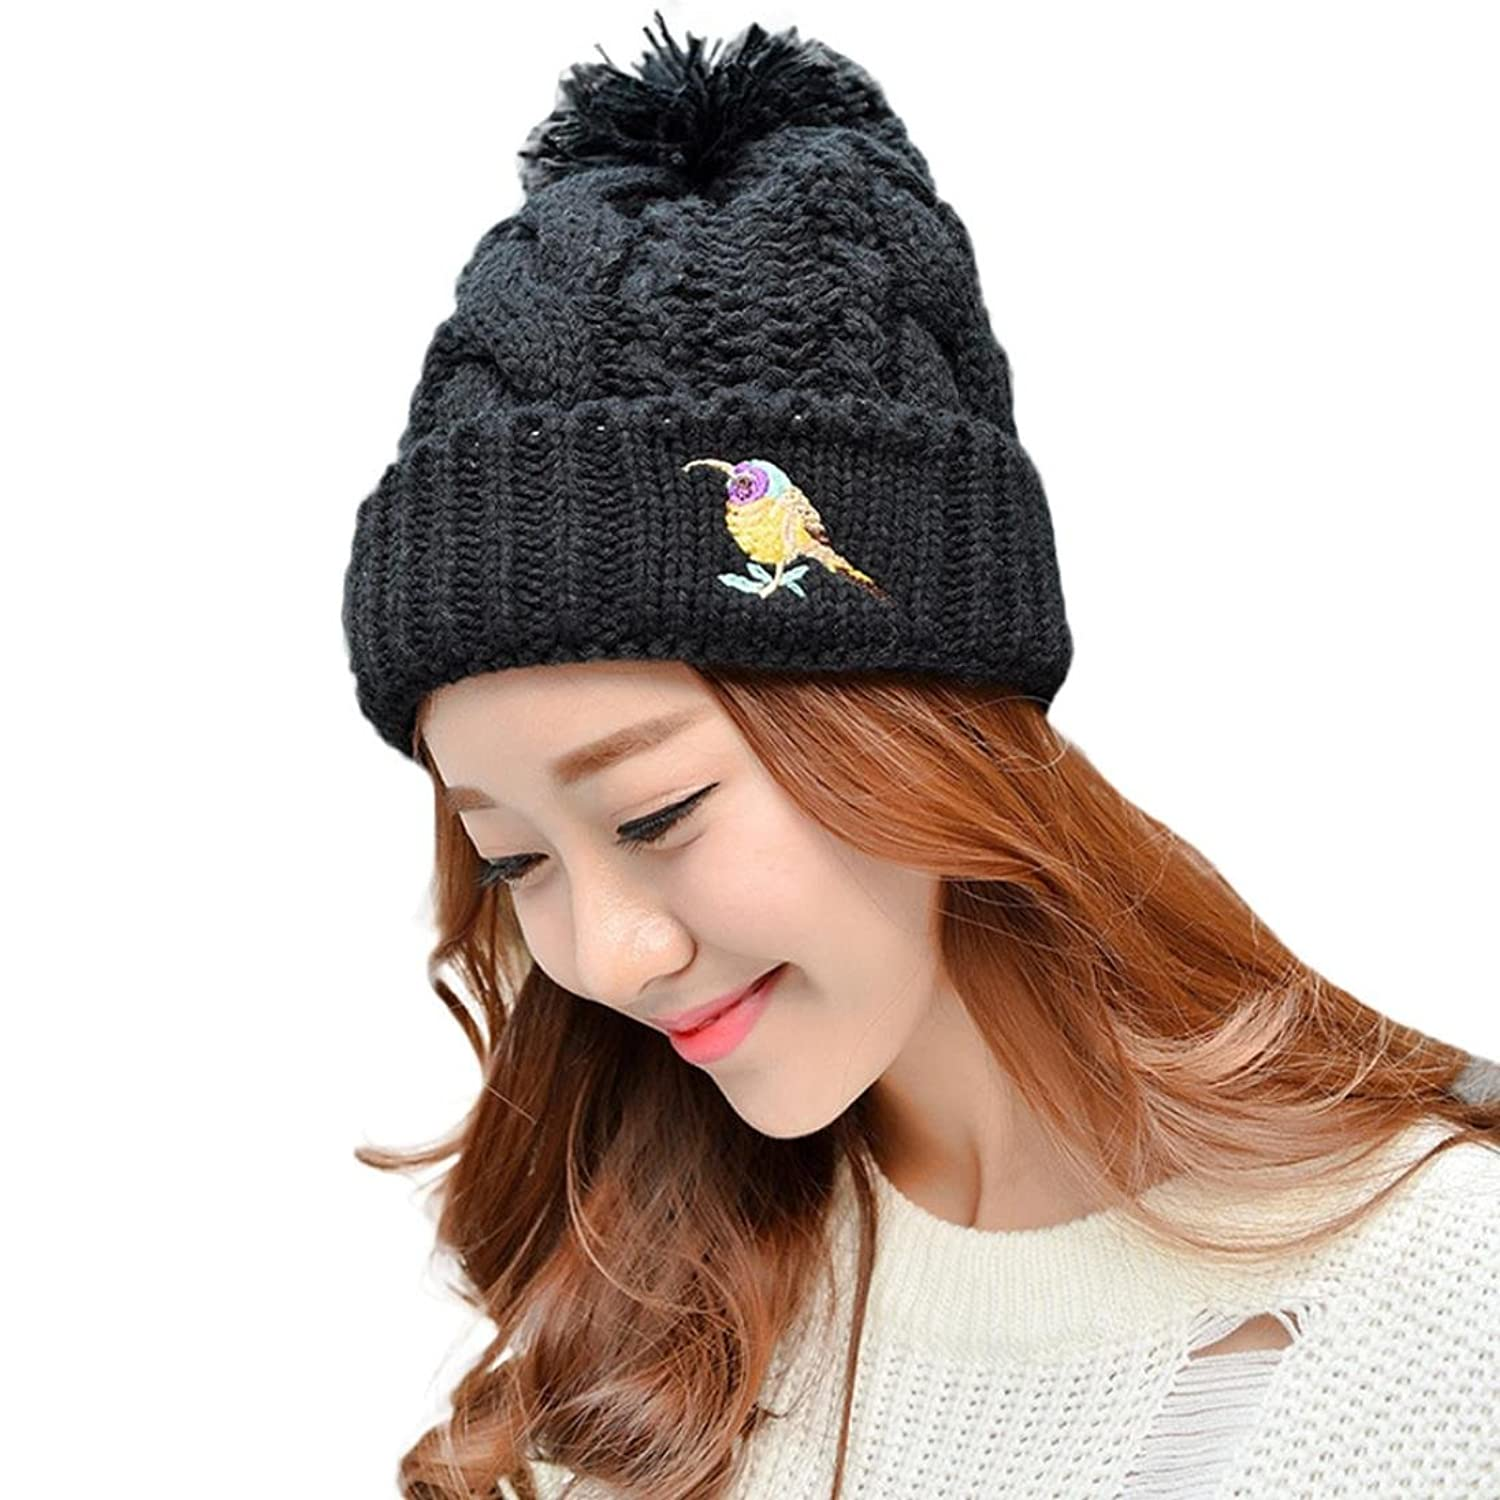 Knit Hats, Doinshop Women's Thick Oversized Cable Knitted Cotton Pom Pom Beanie Cap